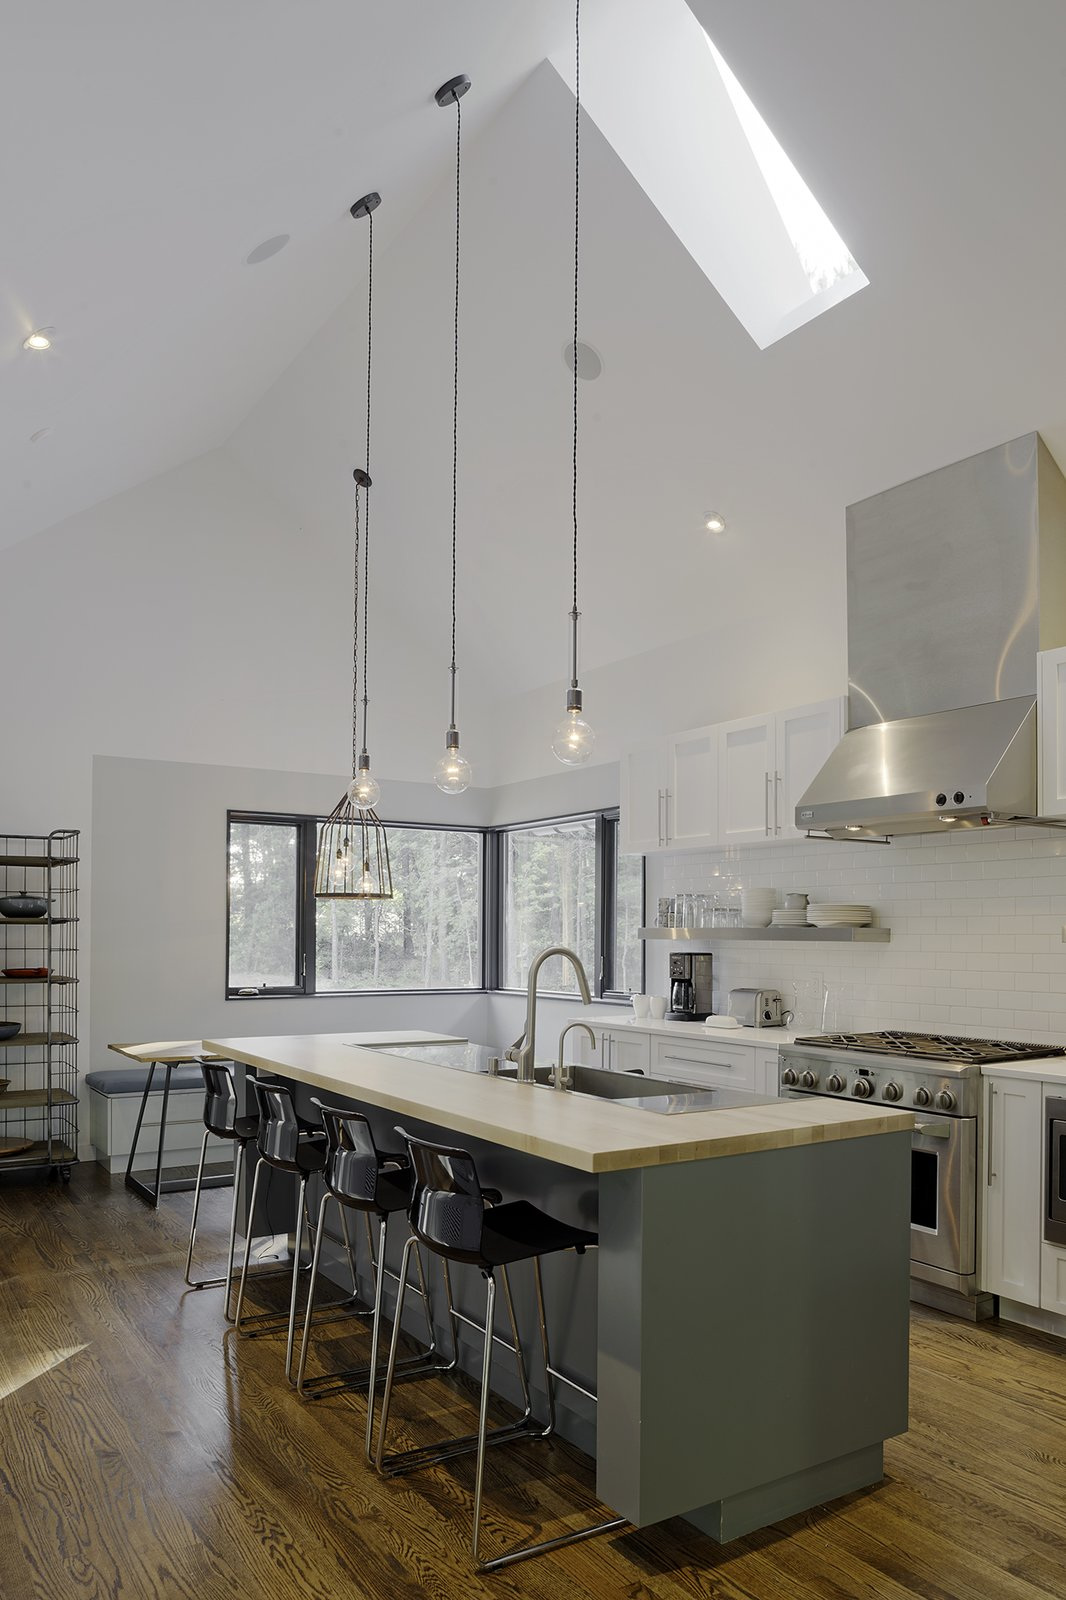 """""""Knowing that the kitchen would be where the family would spend most of their time, it was designed to have a variety of seating and really good views to the beautiful forest and field outside,"""" says Lewis. IKEA bar stools line up against white quartz countertops, and lighting by Schoolhouse Electric & Supply Co. shines overhead.  The Farmhouse by Kelly Dawson"""